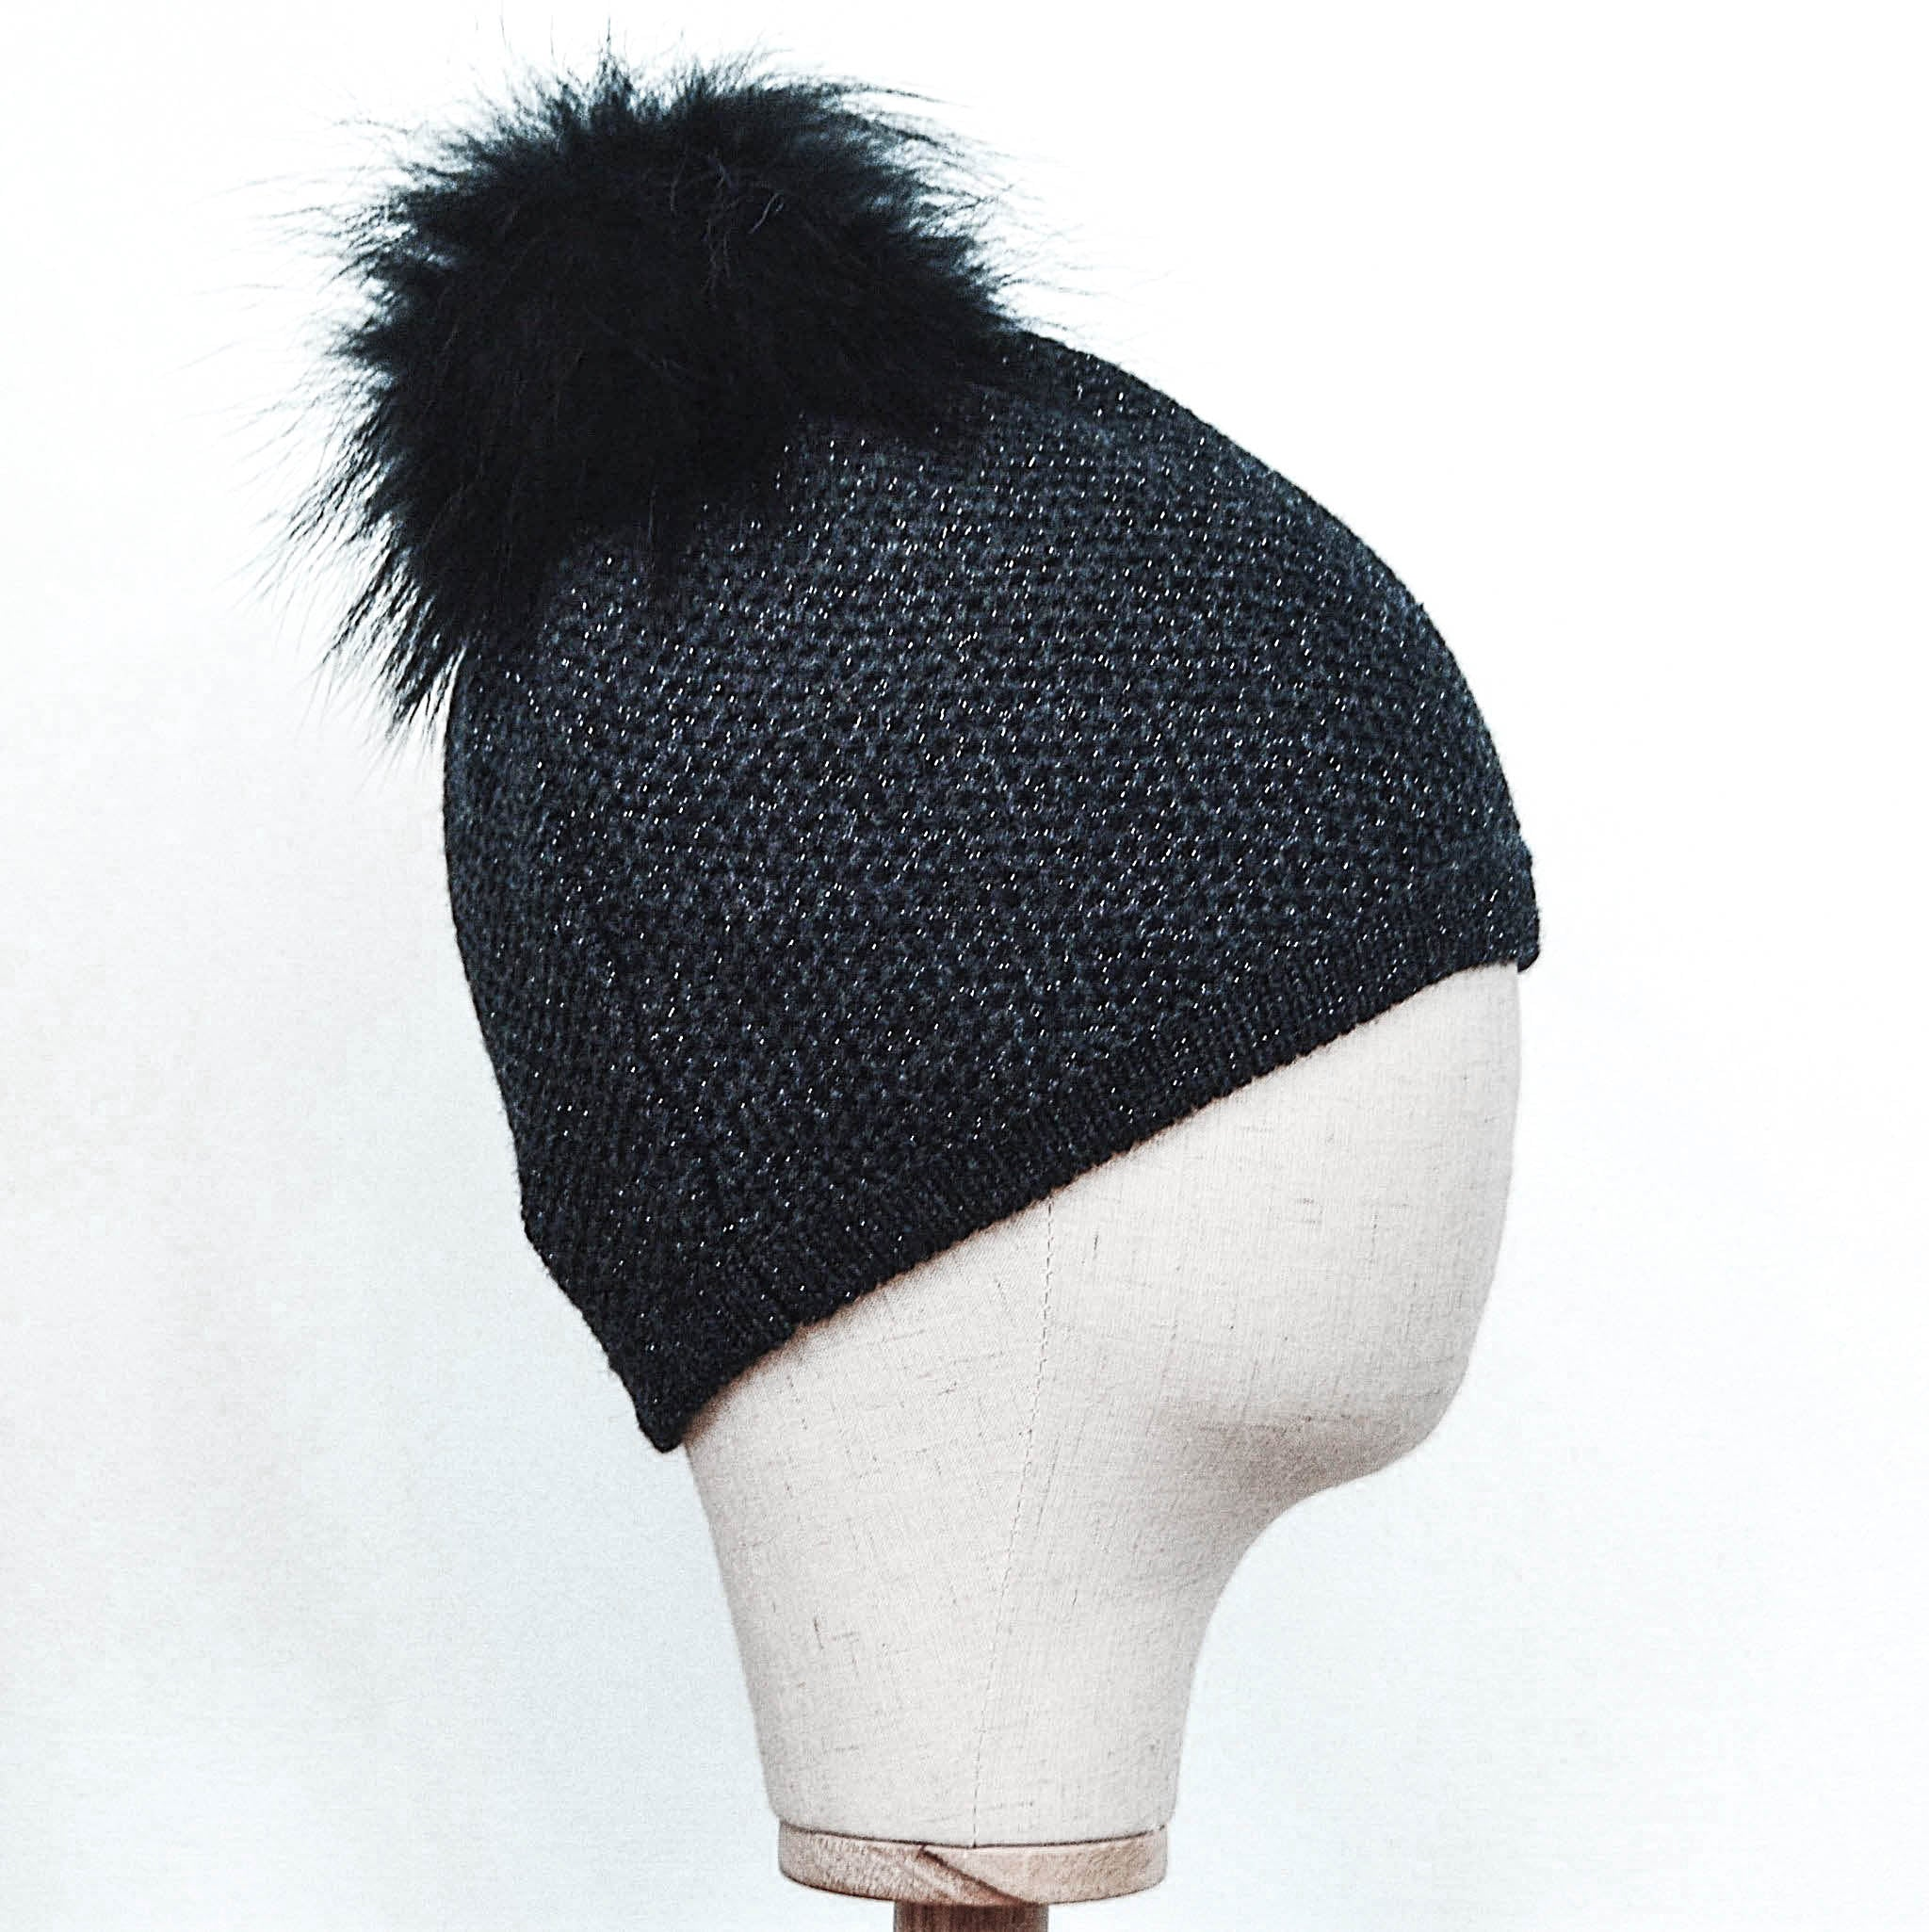 Inverni Black Cashmere Hat with Metallic Thread & Fox Fur Pom-Pom